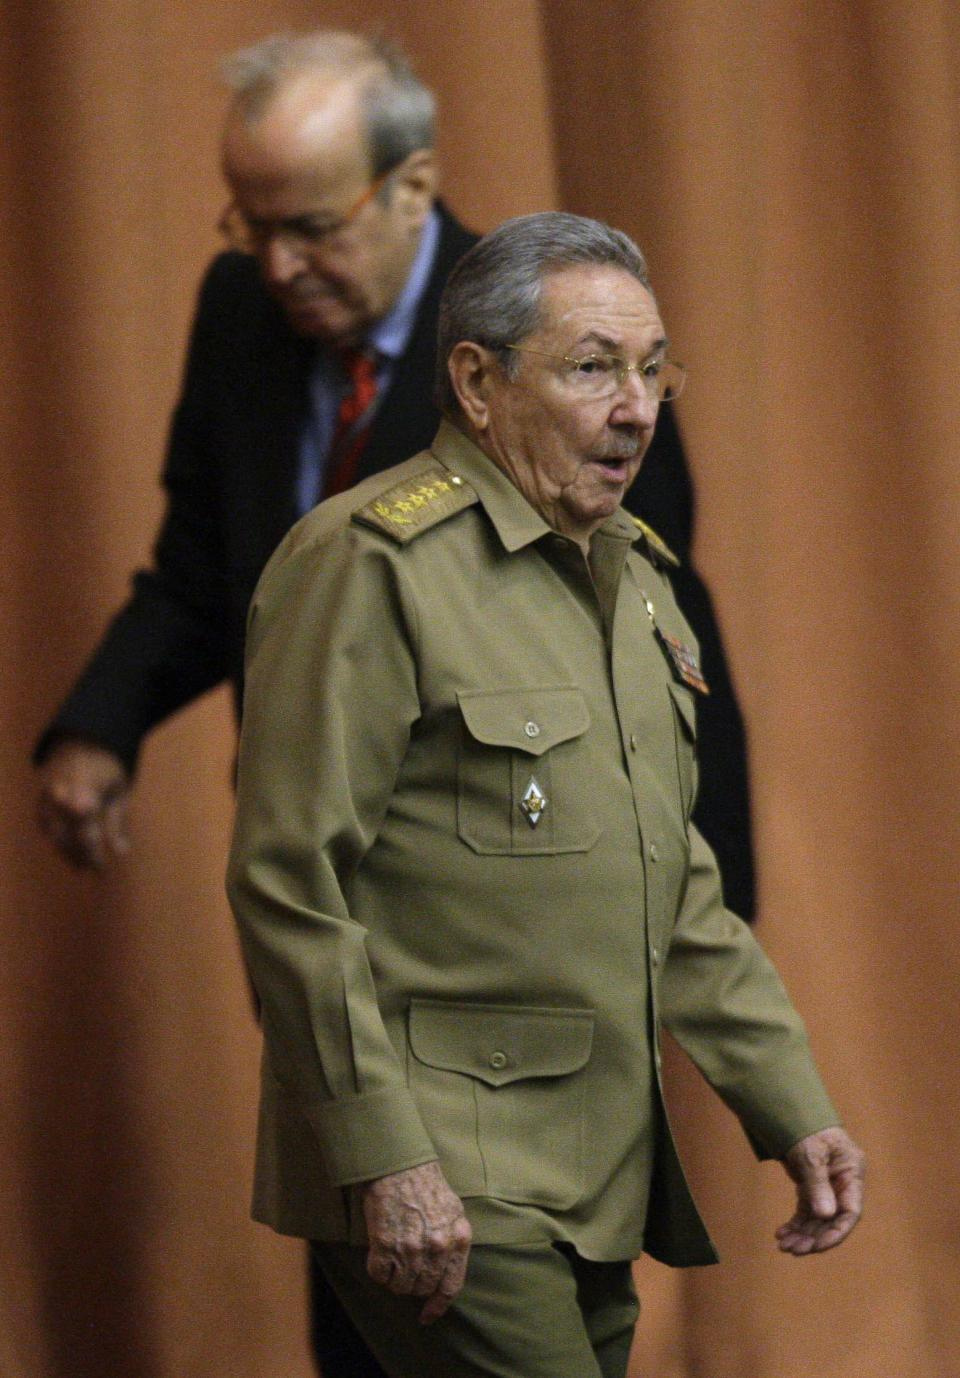 Cuba's President Raul Castro arrives followed by Ricardo Alarcon, president of the National Assembly, for the start of a session in Havana, Cuba, Thursday, Dec. 13, 2012. The session is one of the National Assembly's twice-yearly gatherings. (AP Photo/Ismael Francisco, Cubadebate)